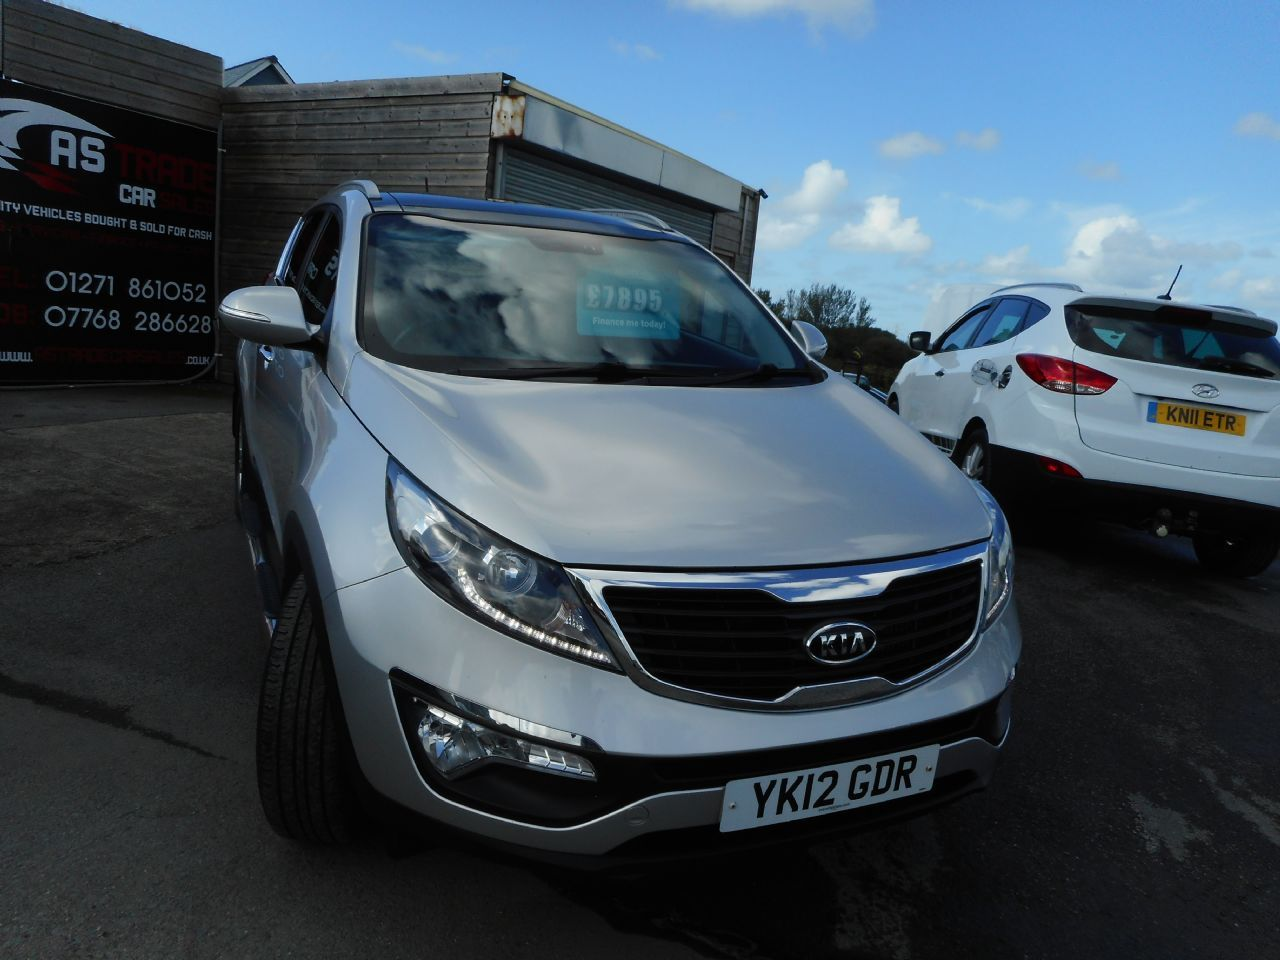 KIASportage1.7 CRDi 2 2WD for sale